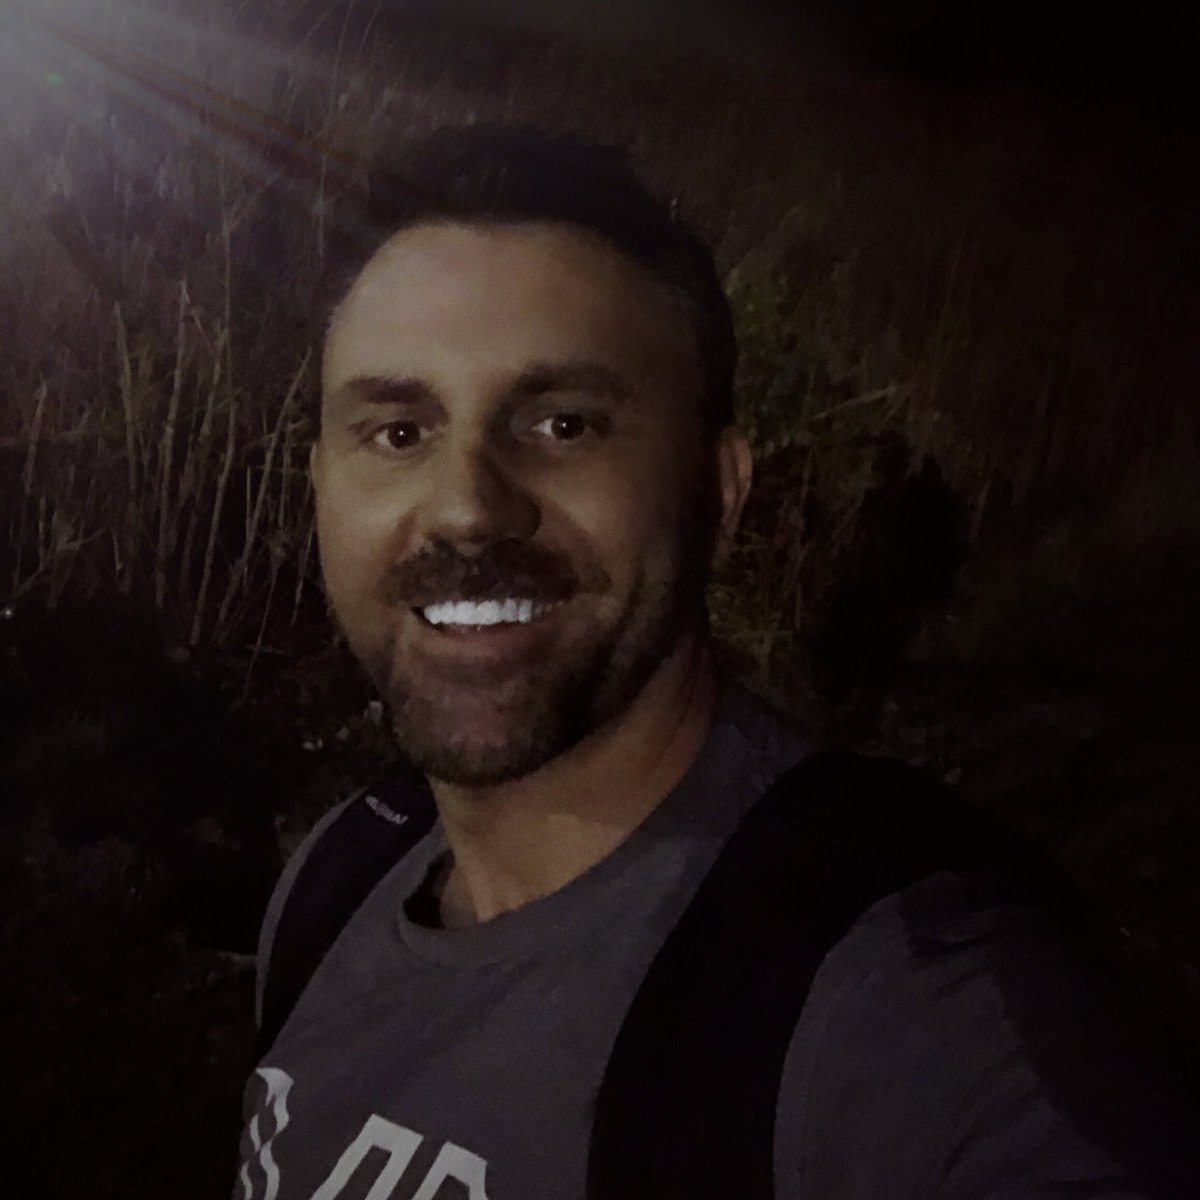 This moonlight is making my teeth look really white on a Friday night 🦷 🌙 I think I'll hang outside awhile and just keep smiling lol #TGIF #country #countrymusic #smile